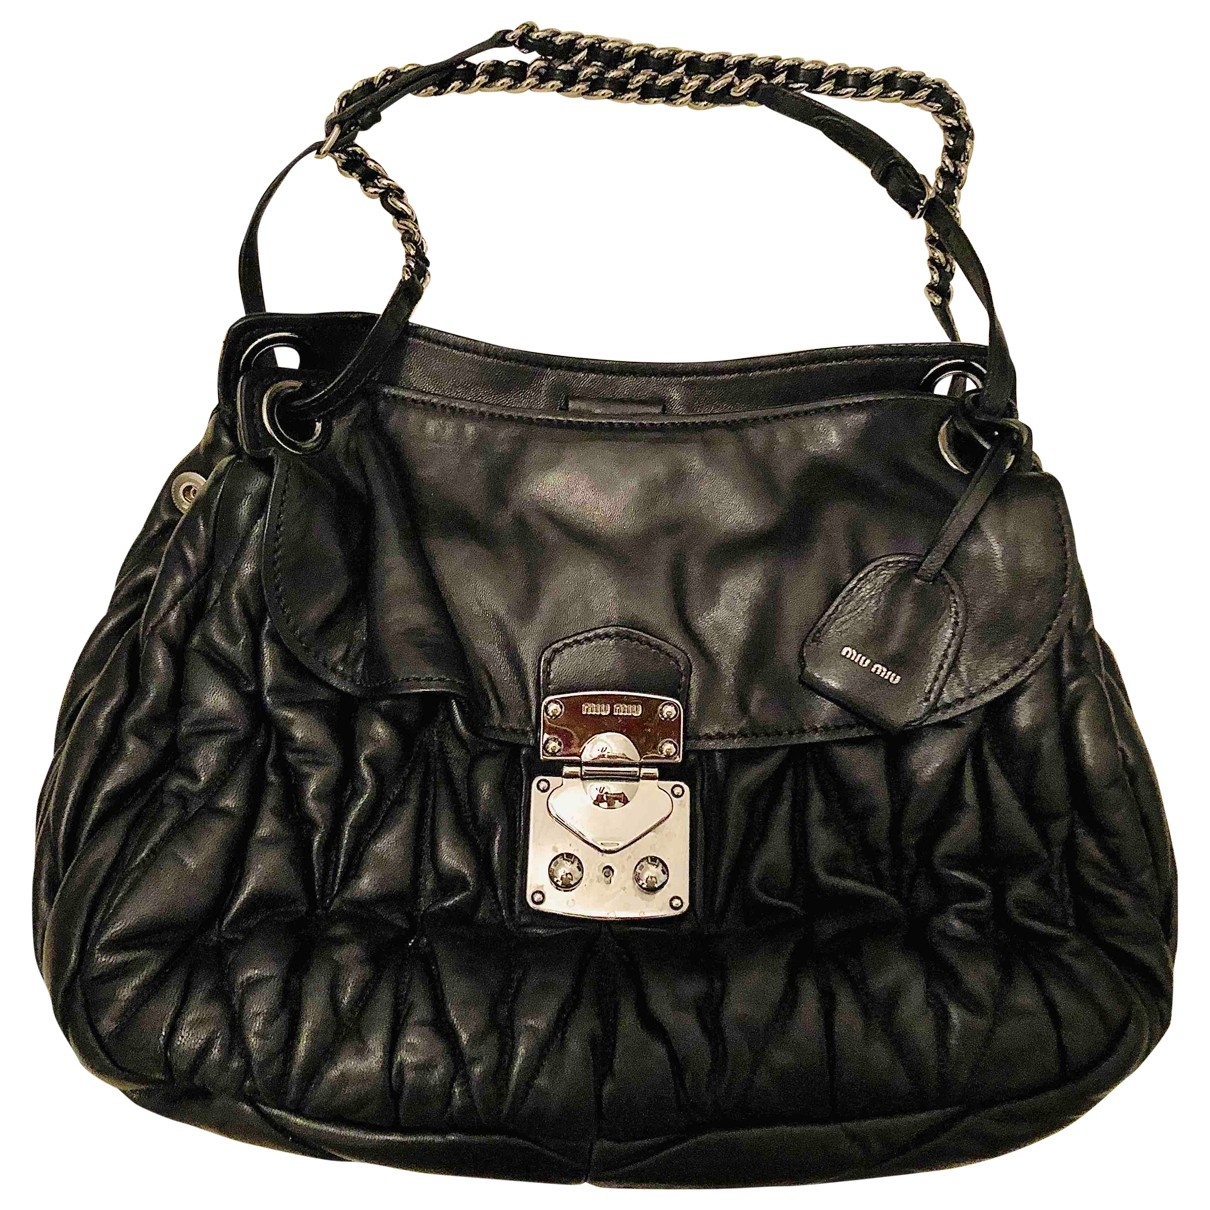 Miu Miu Coffer Black Leather handbag for Women \N